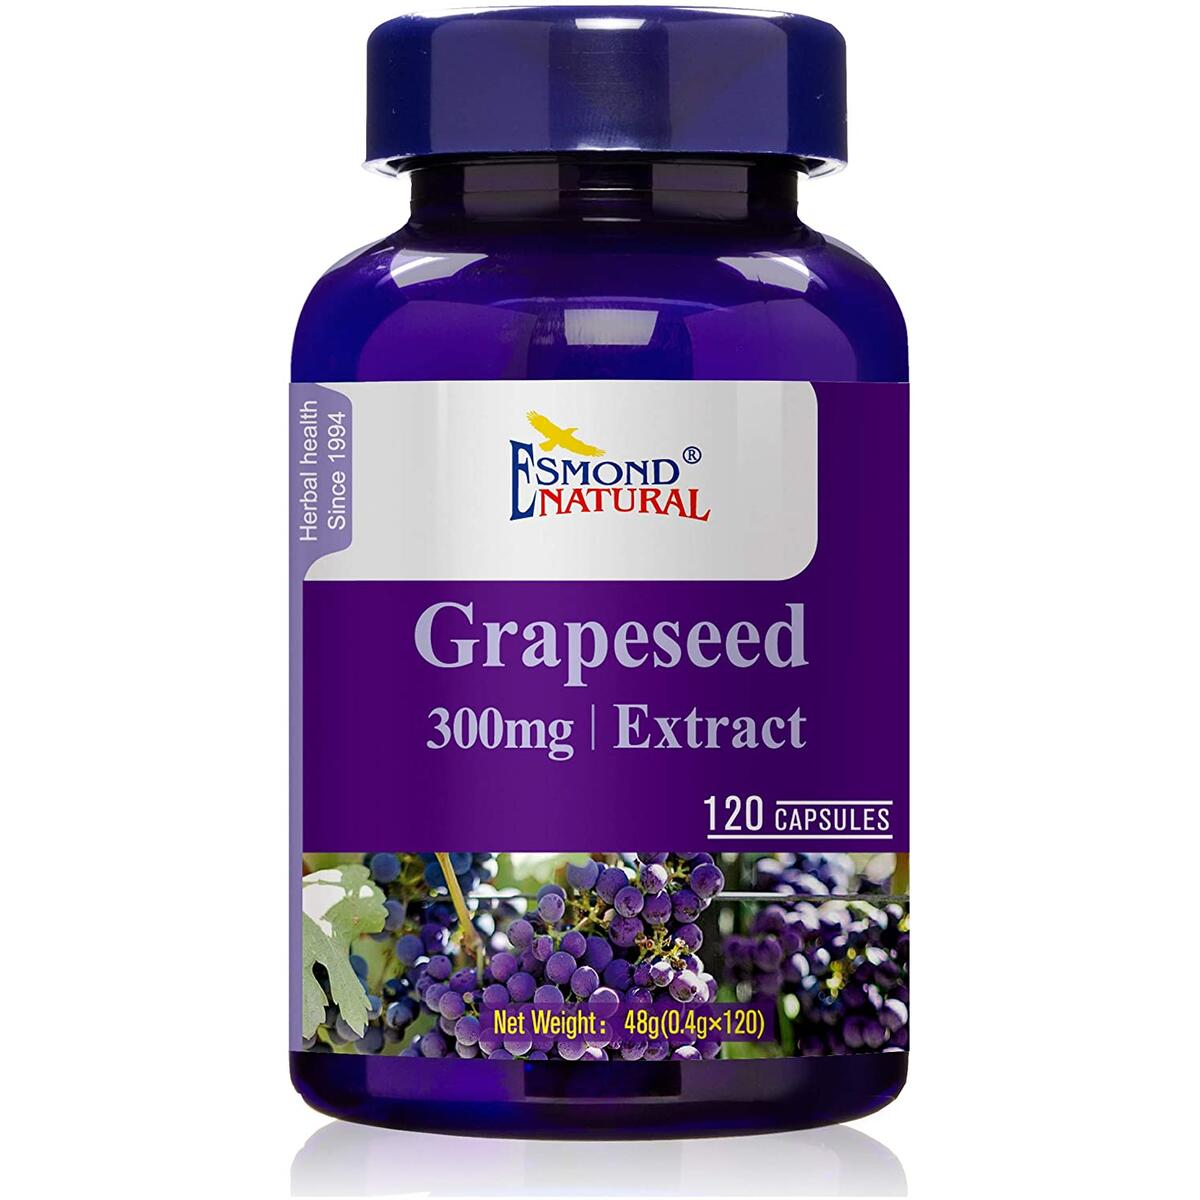 Esmond Natural: Grapeseed Extract (Helps Maintain Antioxidant Health), GMP, Natural Product Assn Certified, Made in USA-300mg, 120 Capsules